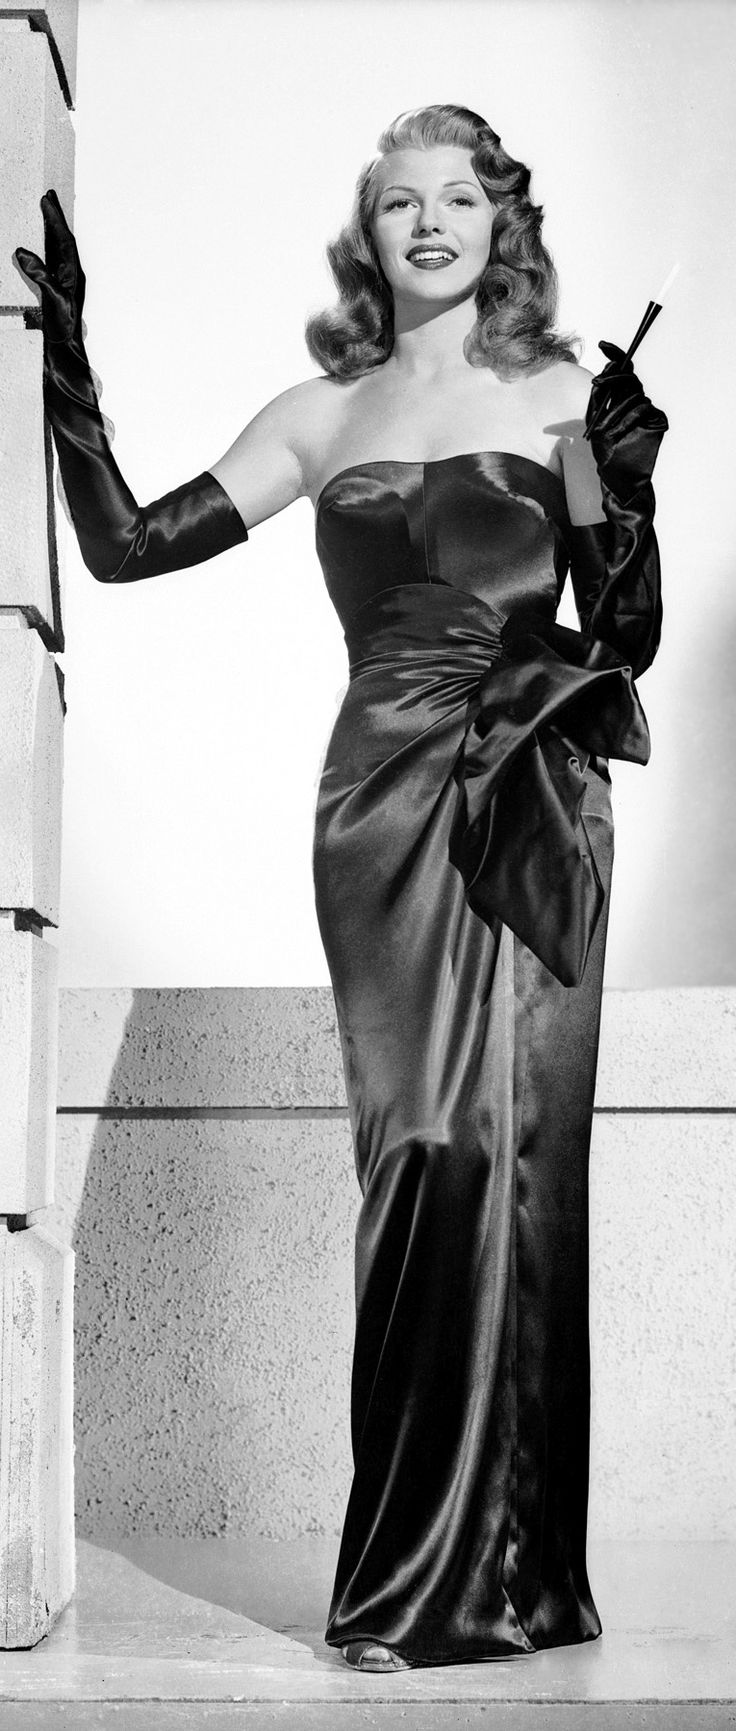 Rita Hayworth | 1940s Glamour Queen of the Silver Screen | 1950s Classic…